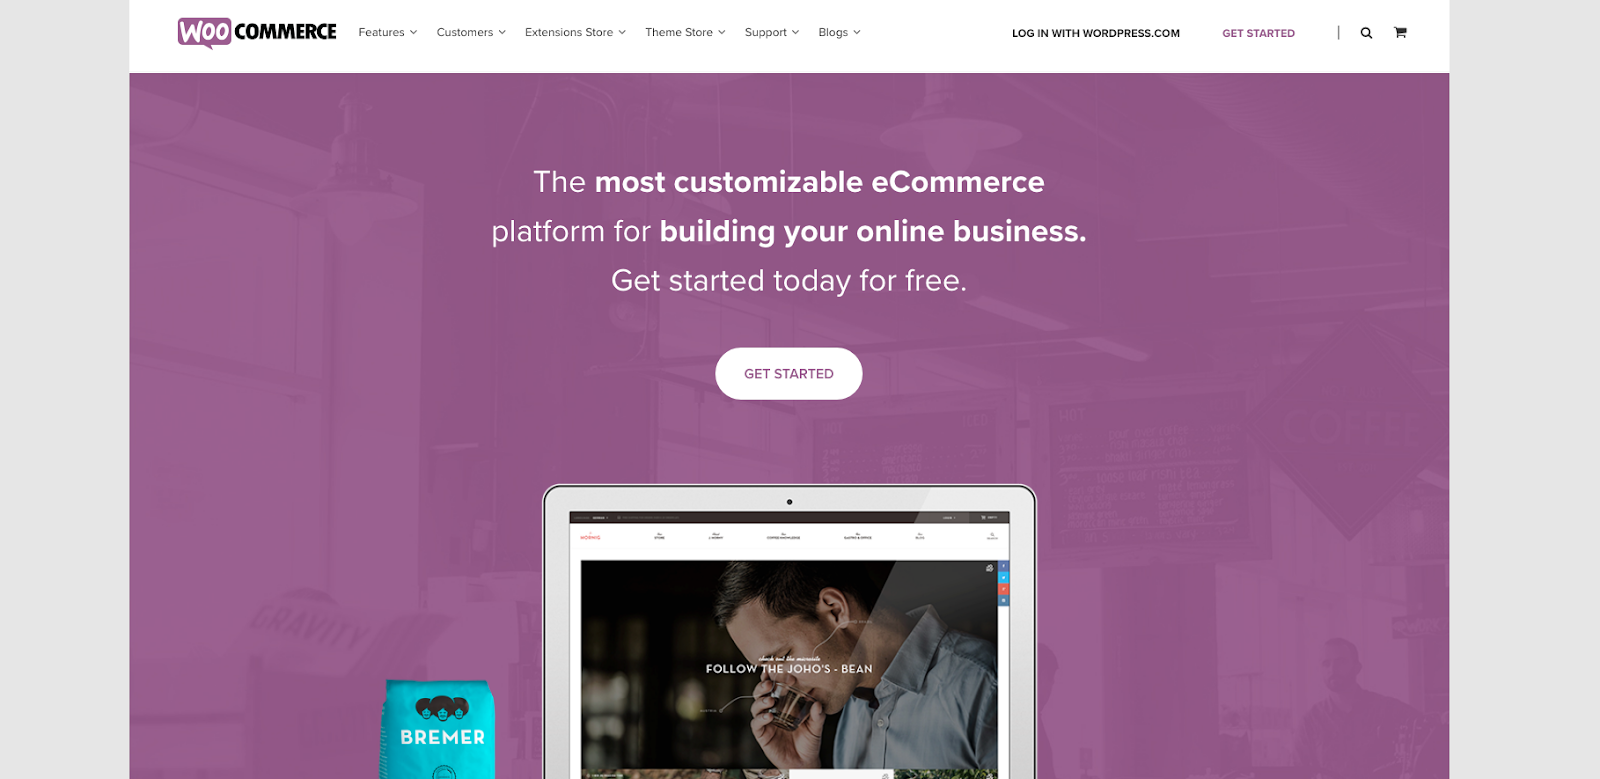 WooCommerce Website's Home Page